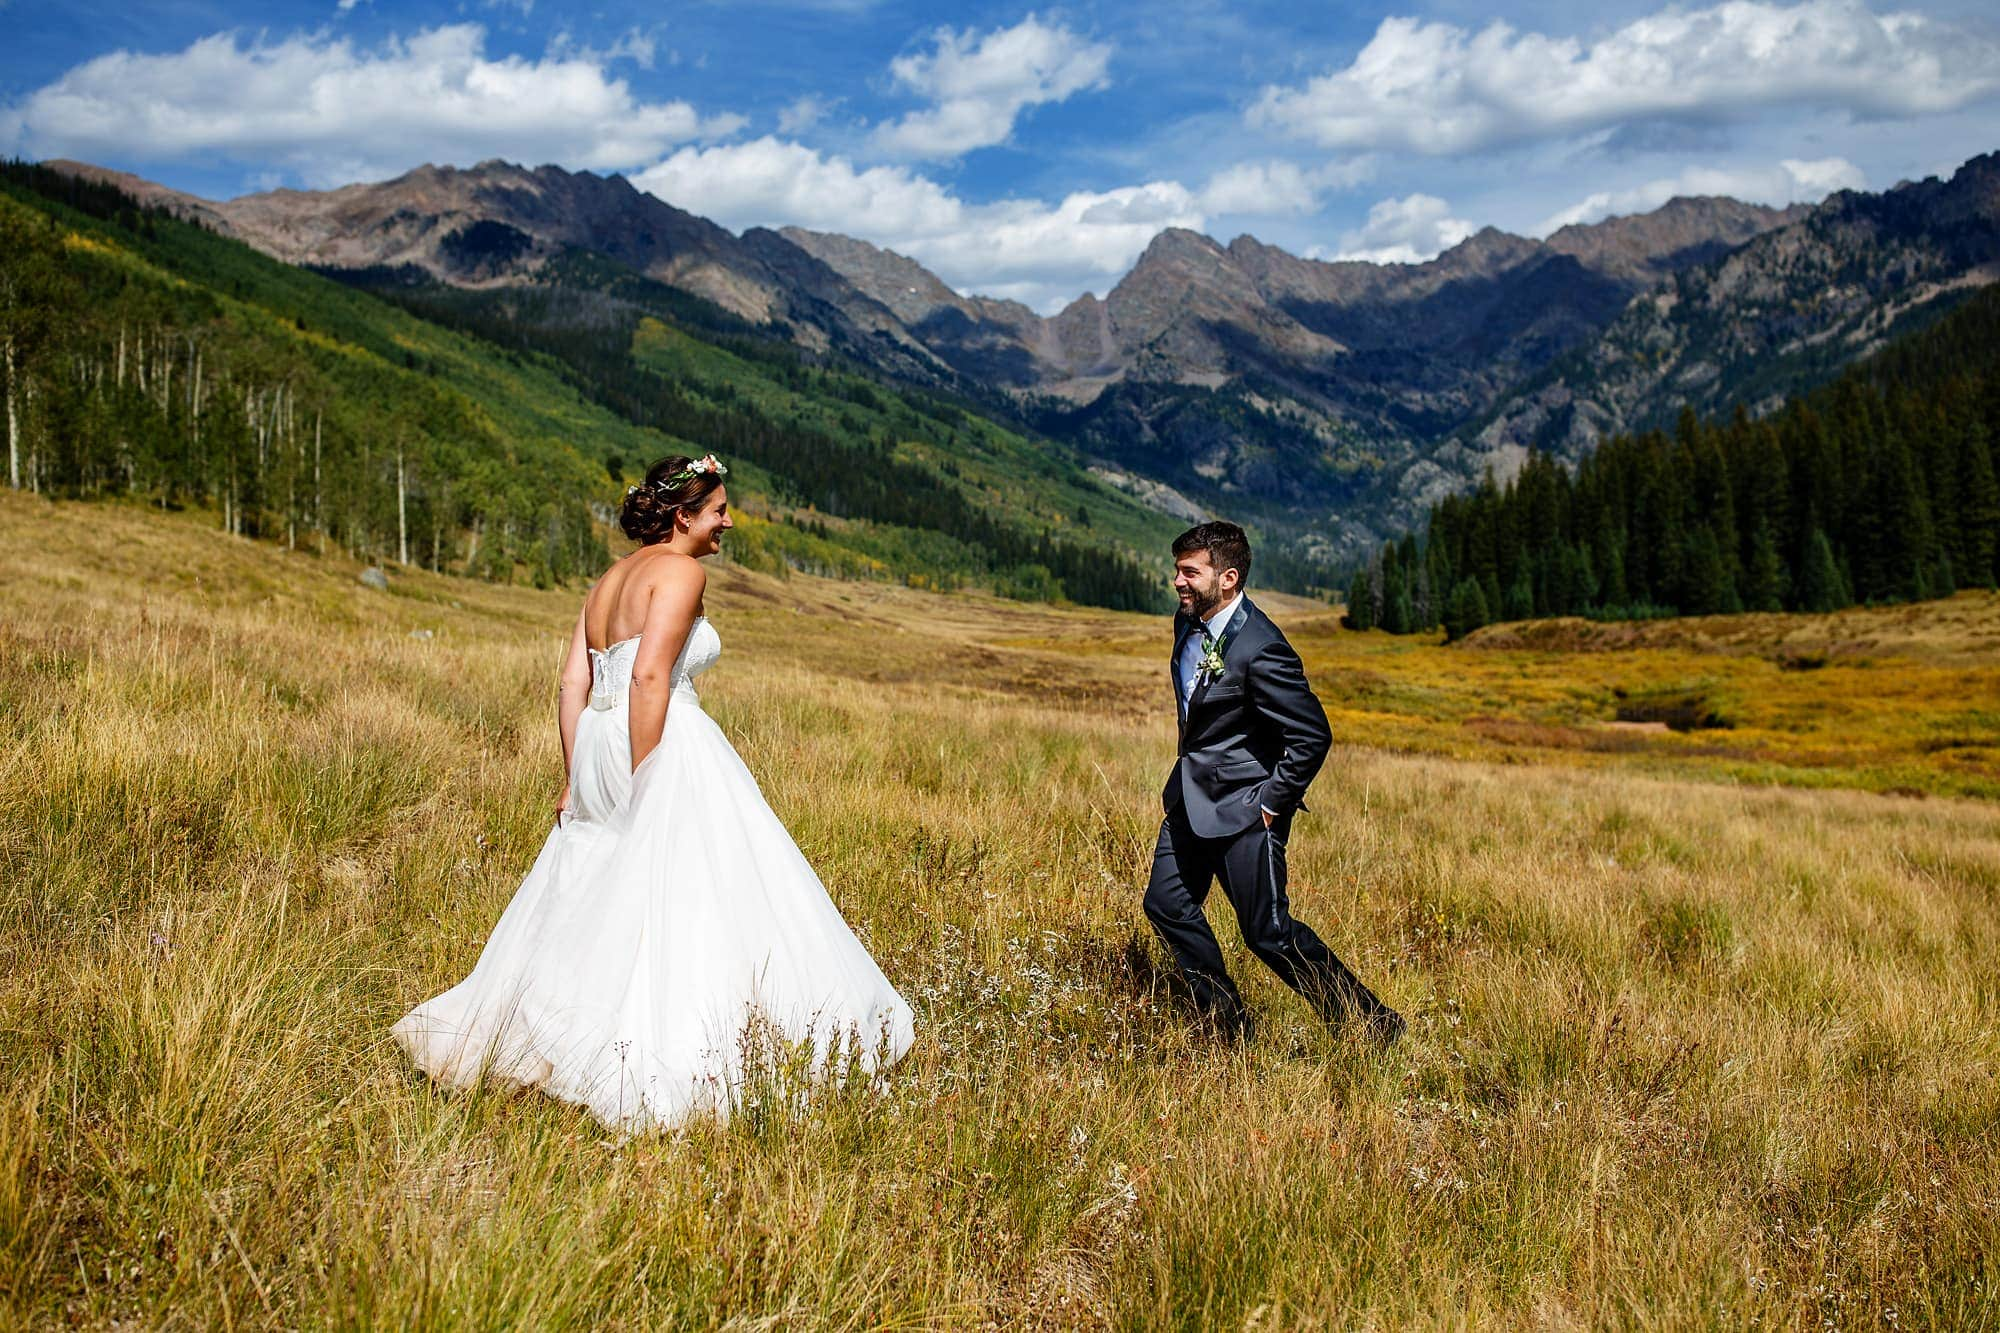 Piney River Ranch wedding | Vail, CO | Becky and Brian